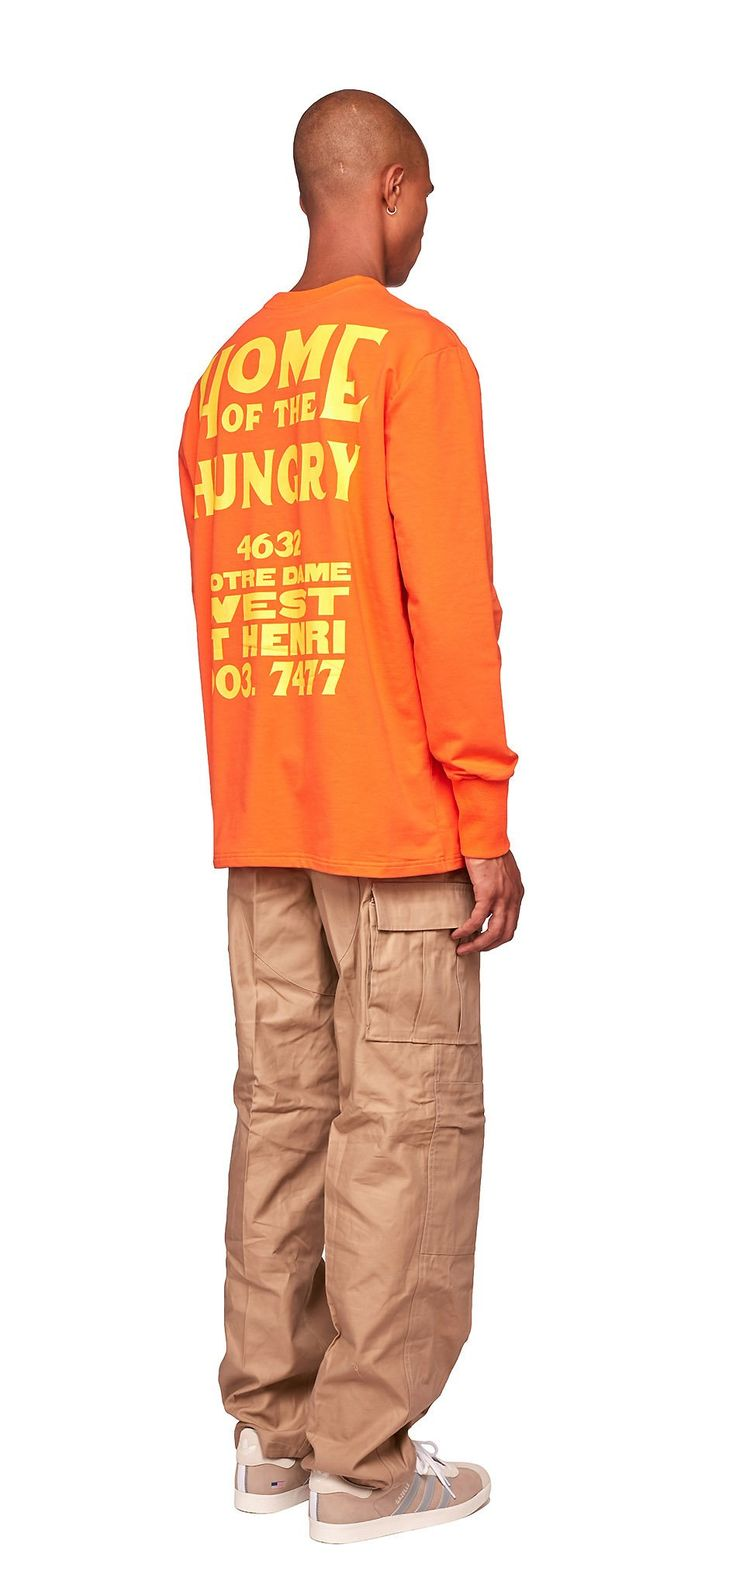 """Home Of The Hungry Long Sleeve (Orange) / This long sleeve shirt features """"Home of the Hungry"""" artwork printed in yellow on back. #fw17"""